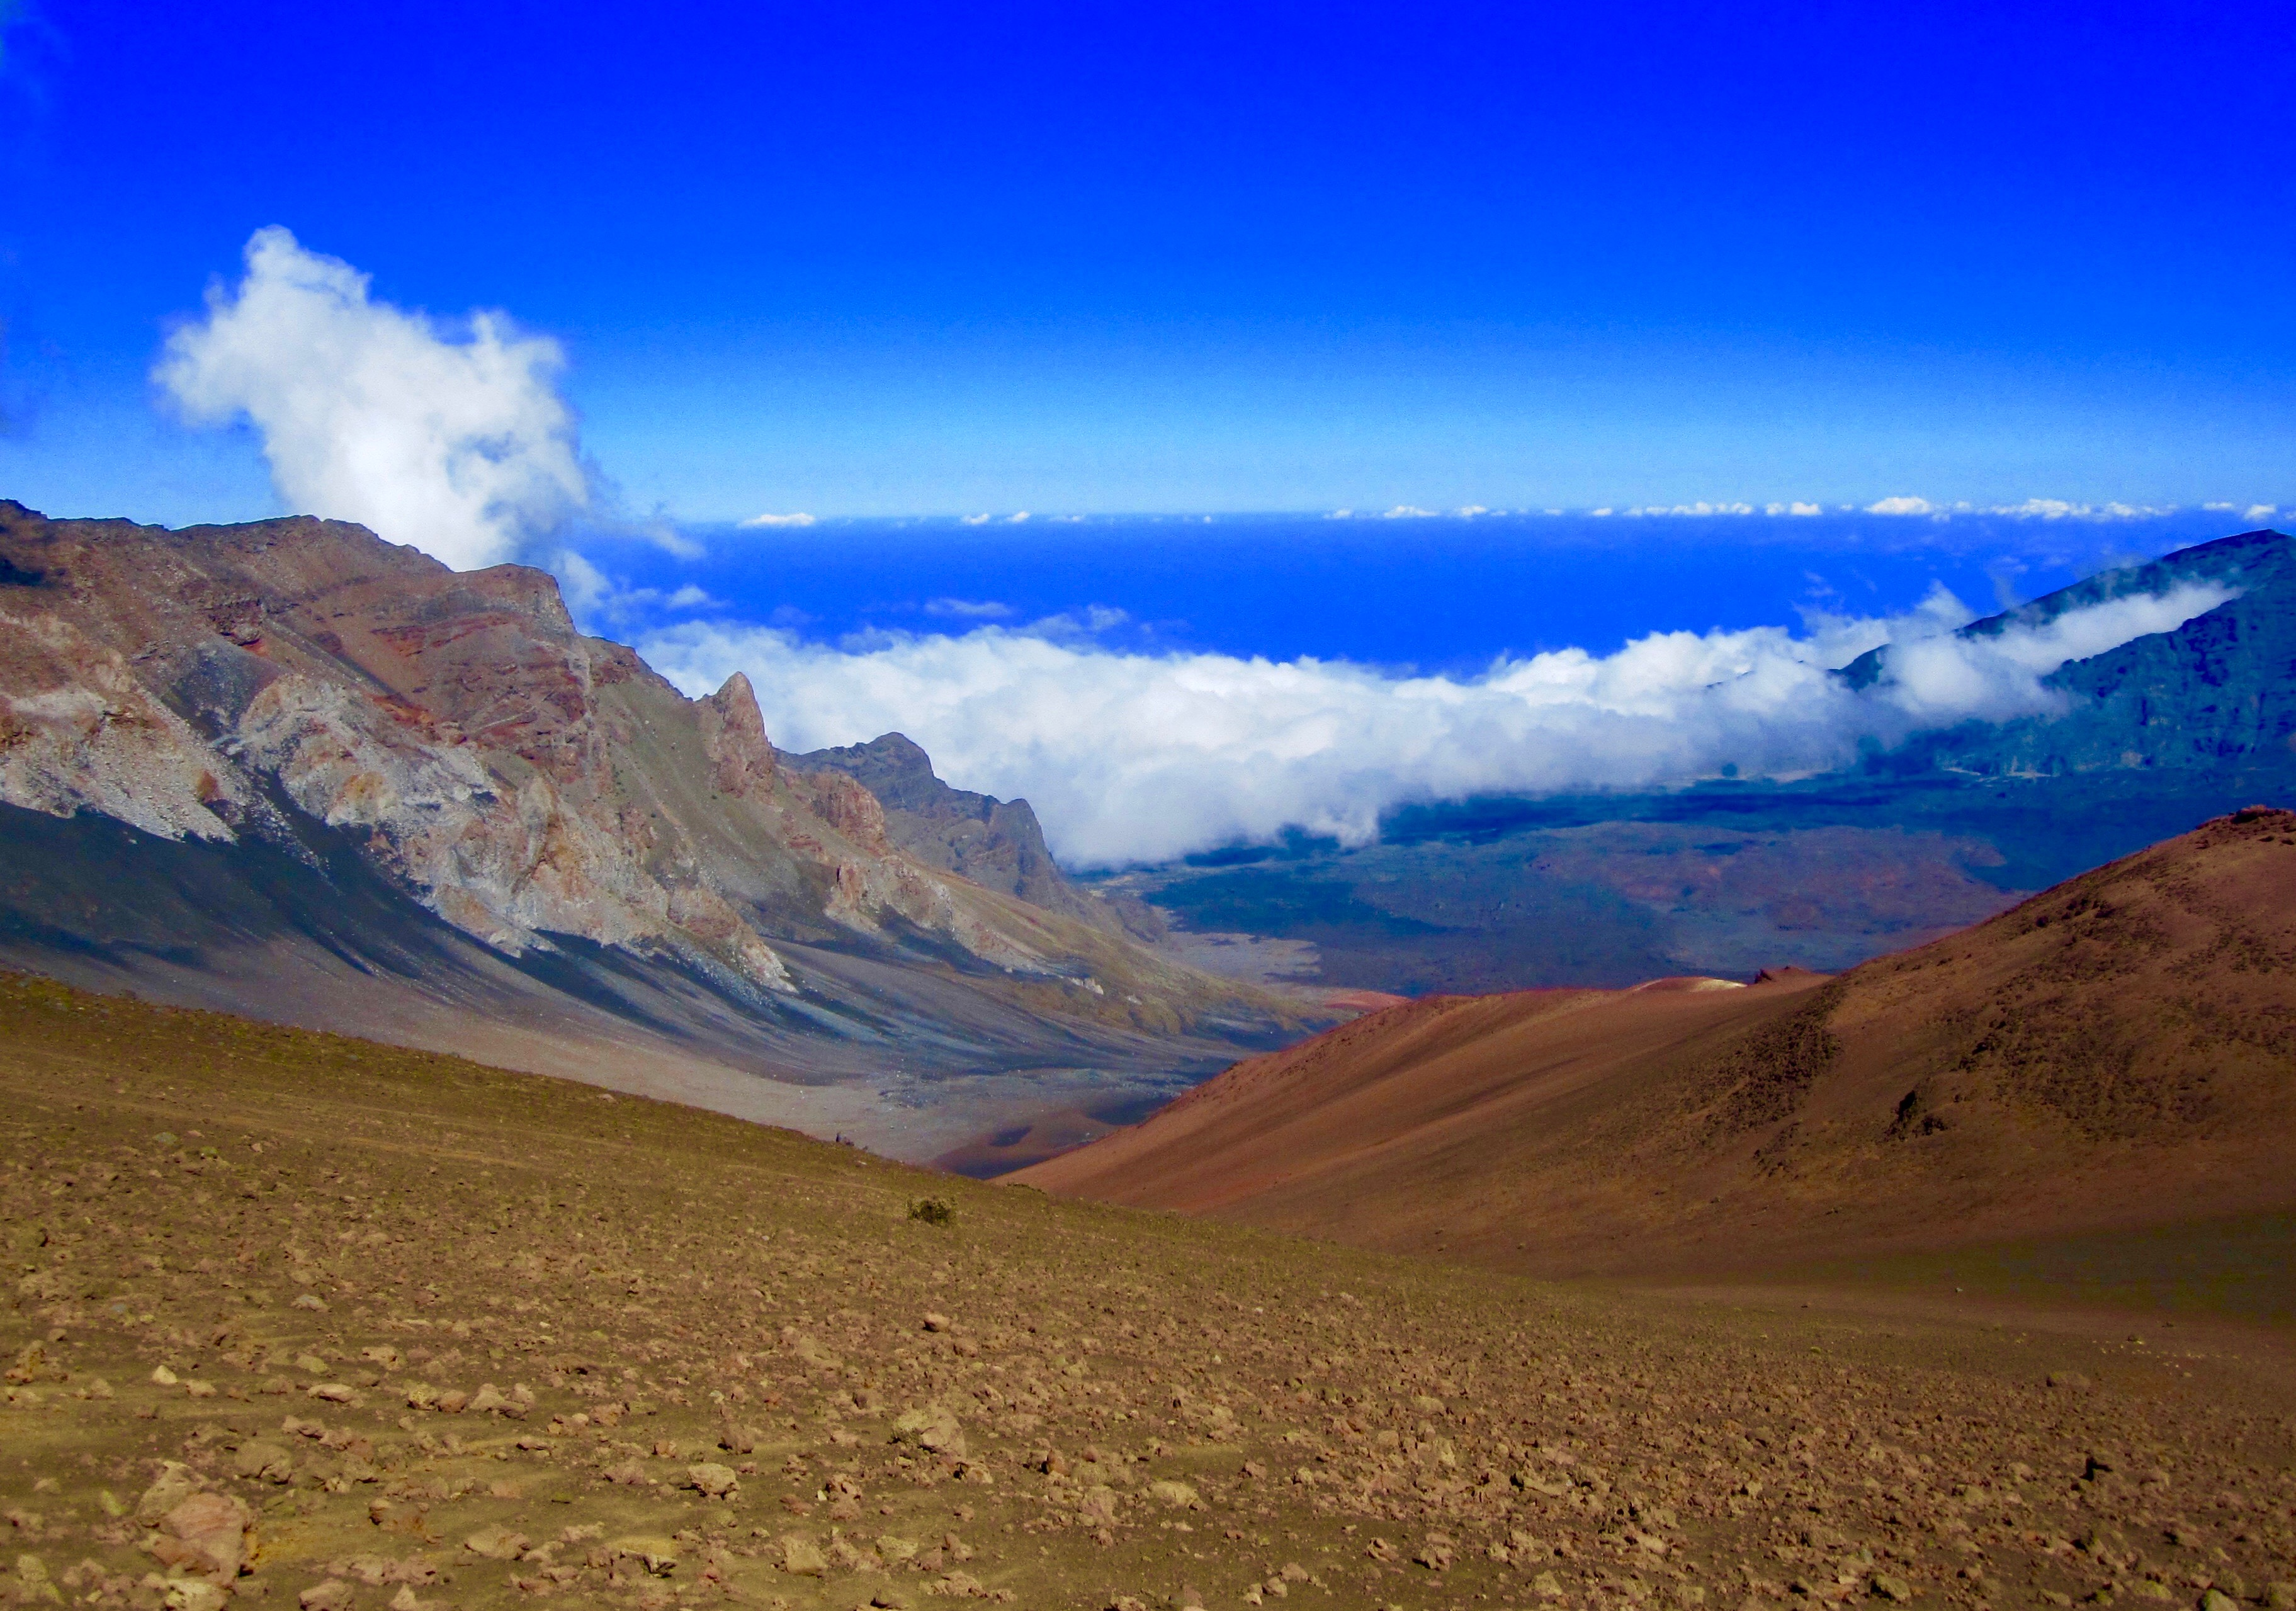 #39 Haleakala National Park